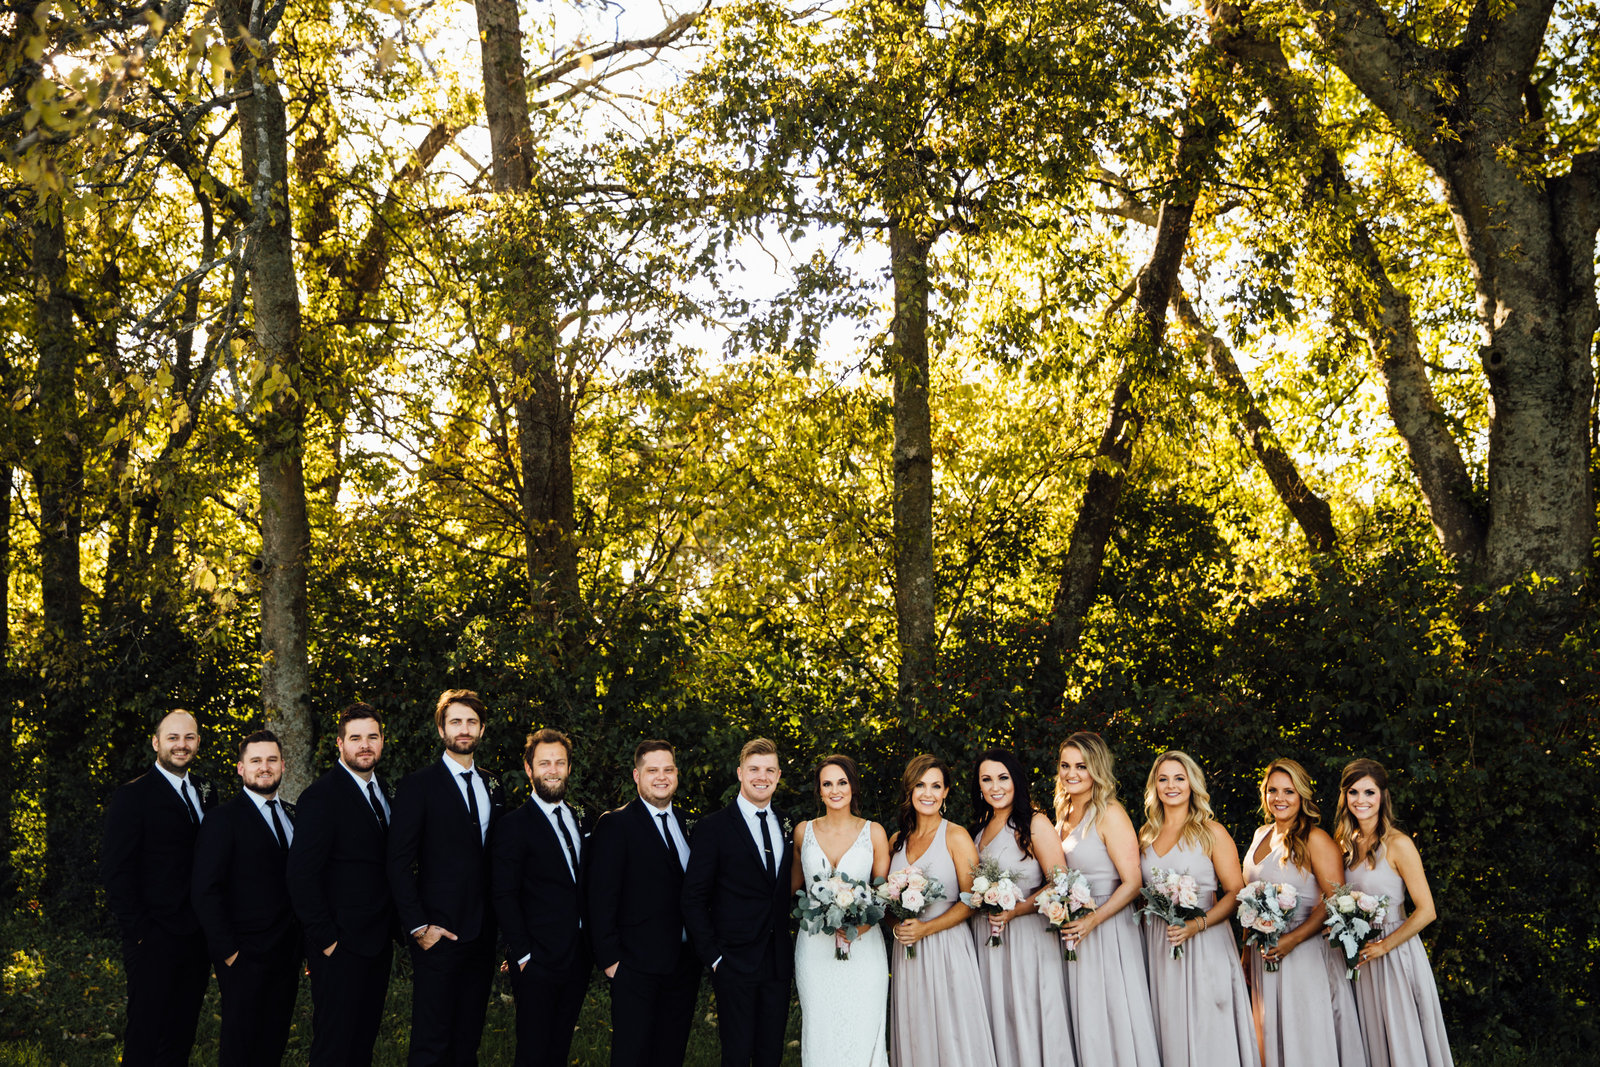 SaraLane-And-Stevie-Wedding-Photography-Jen-Joe-Nashville-Tennessee-LR-130